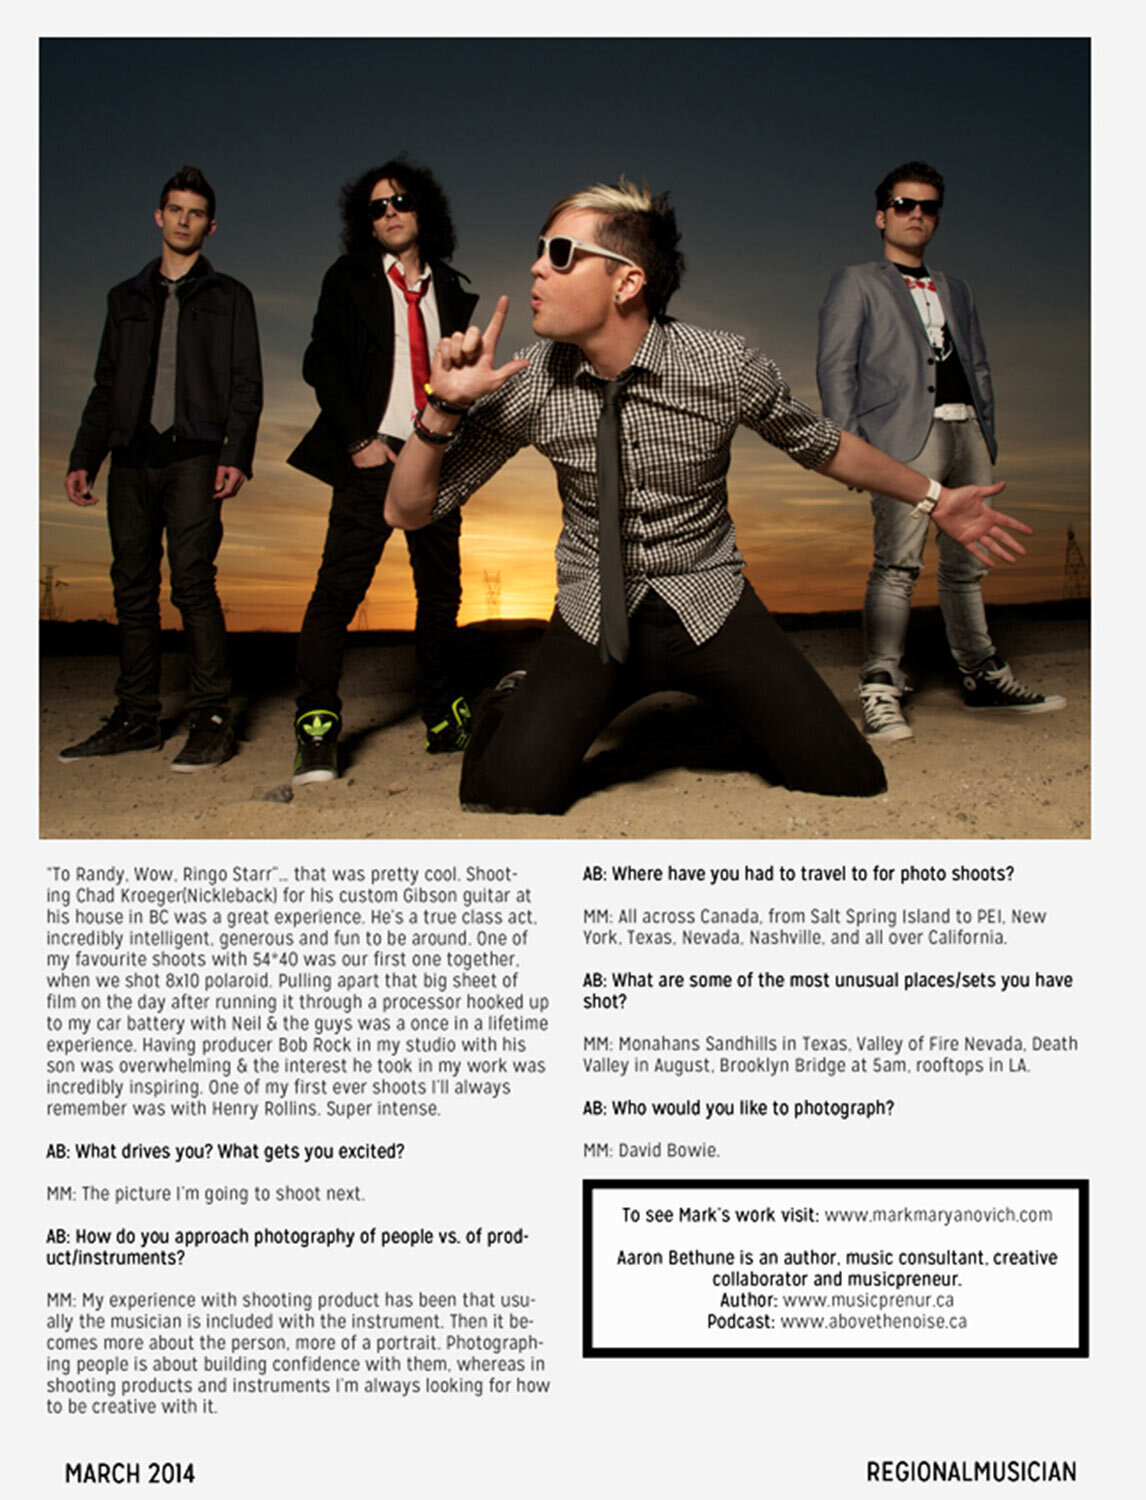 Interview featuring Photographer Mark Maryanovich Regional Musician Magazine band photo four members in standing in desert at sunset lead singer on knees in foreground page 8